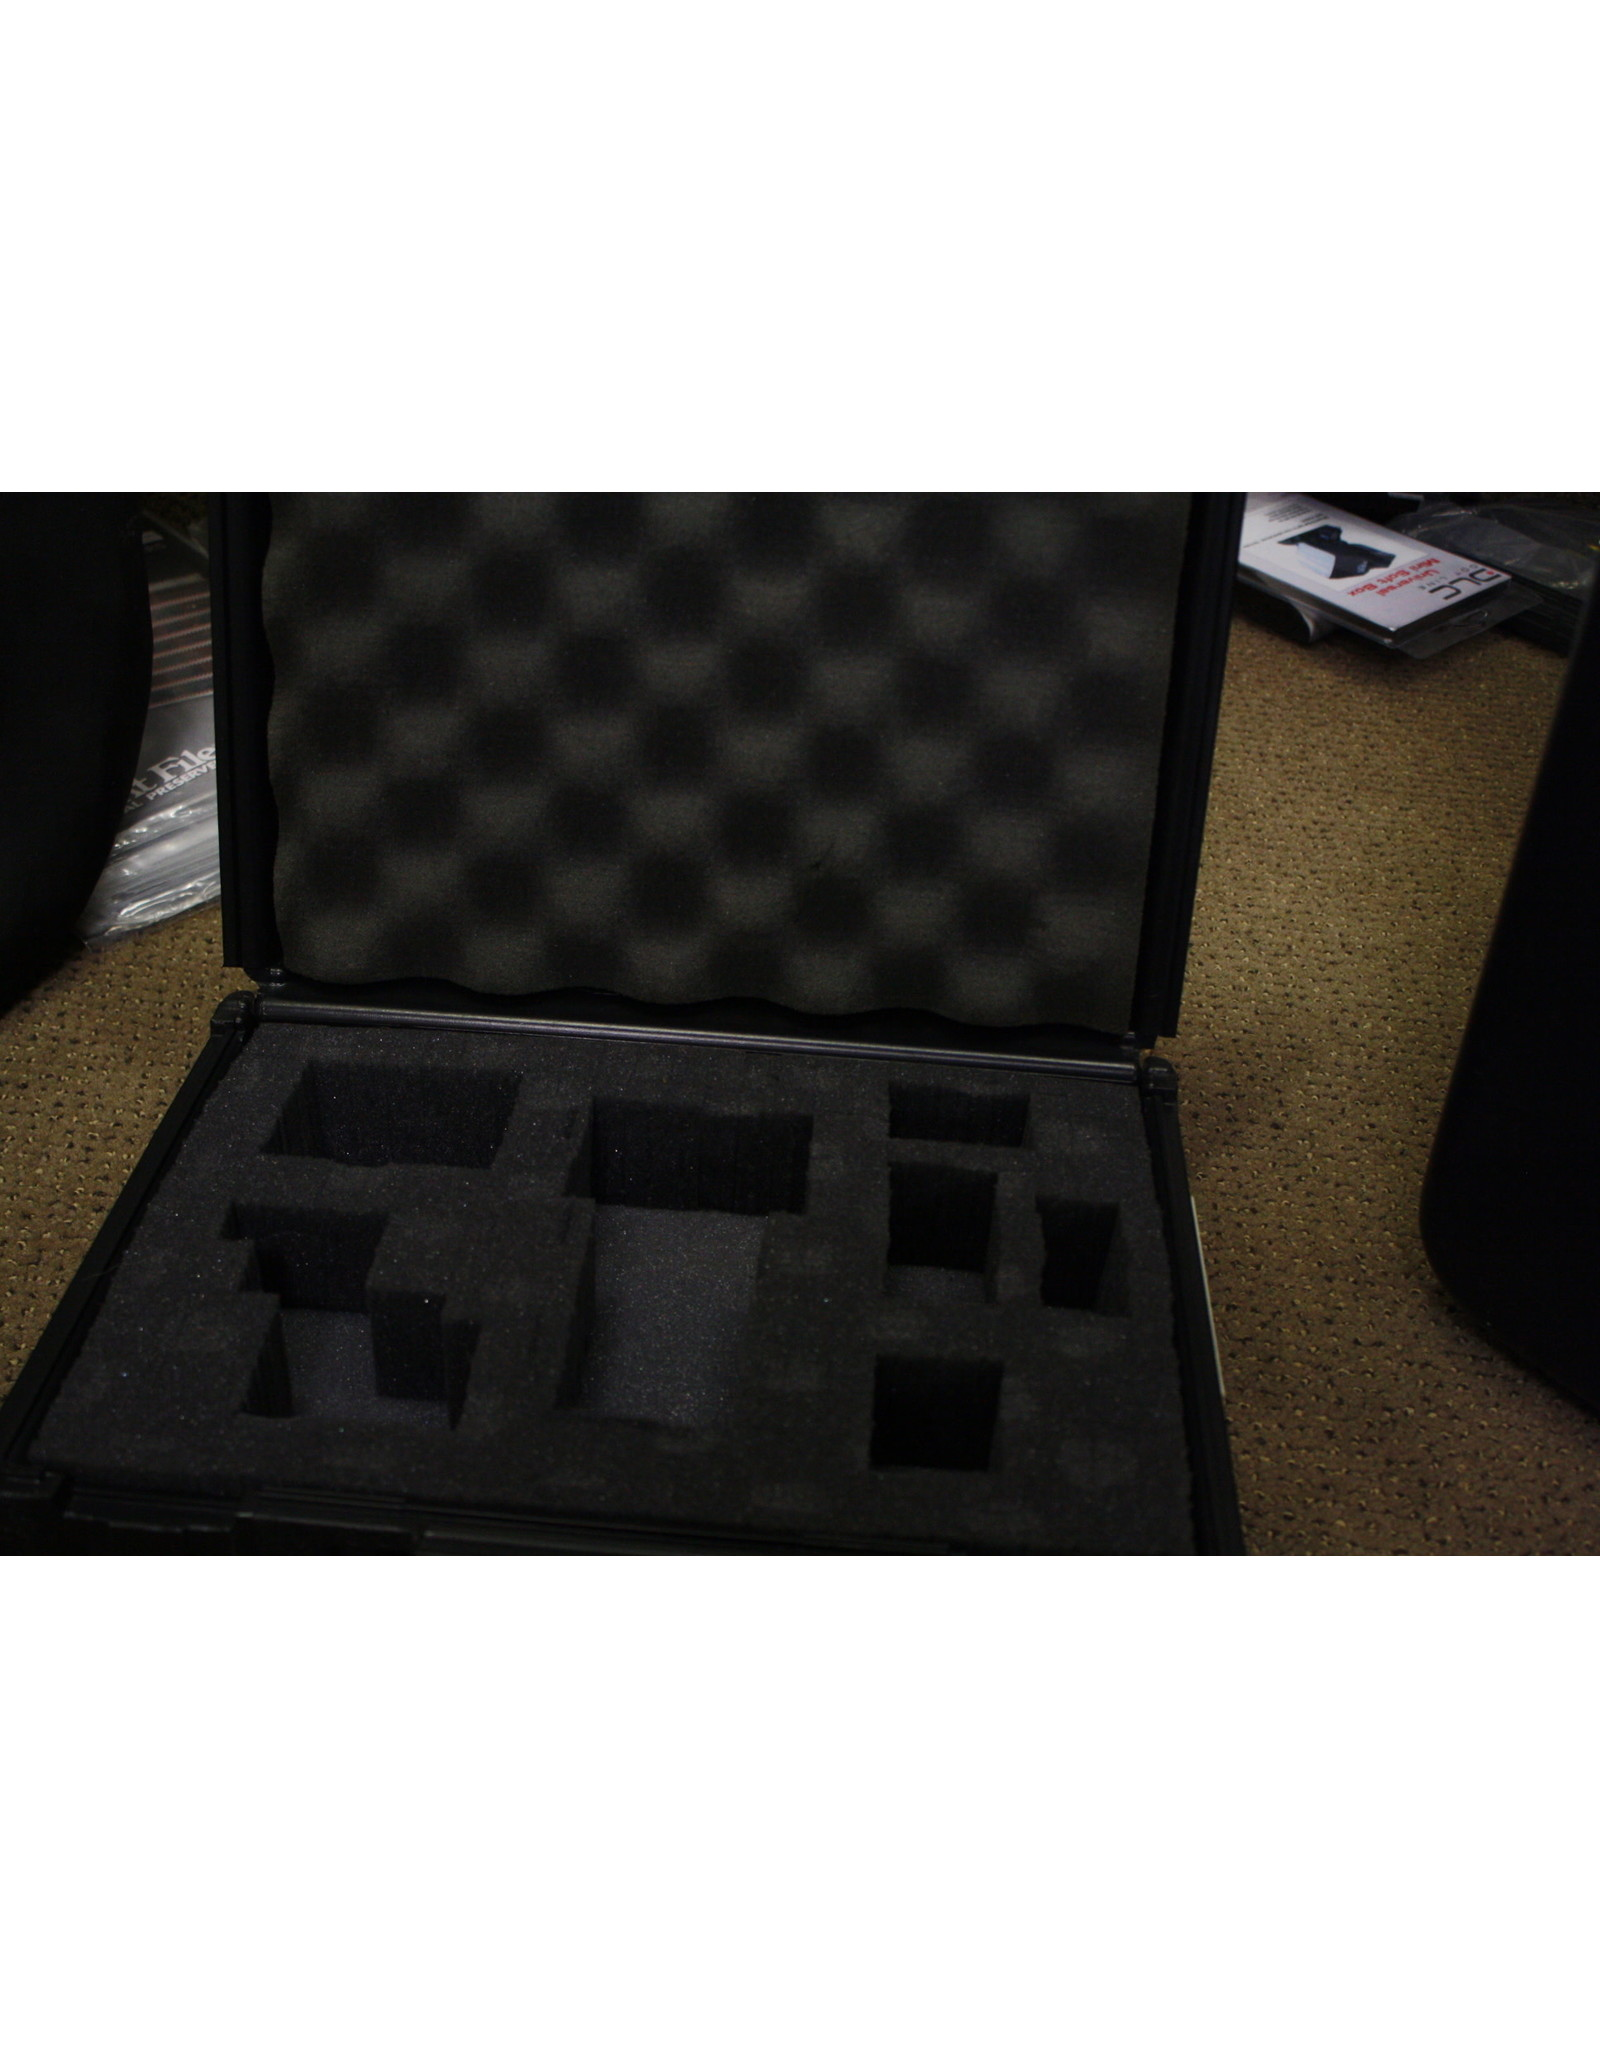 ABS Eyepiece Case with foam insert